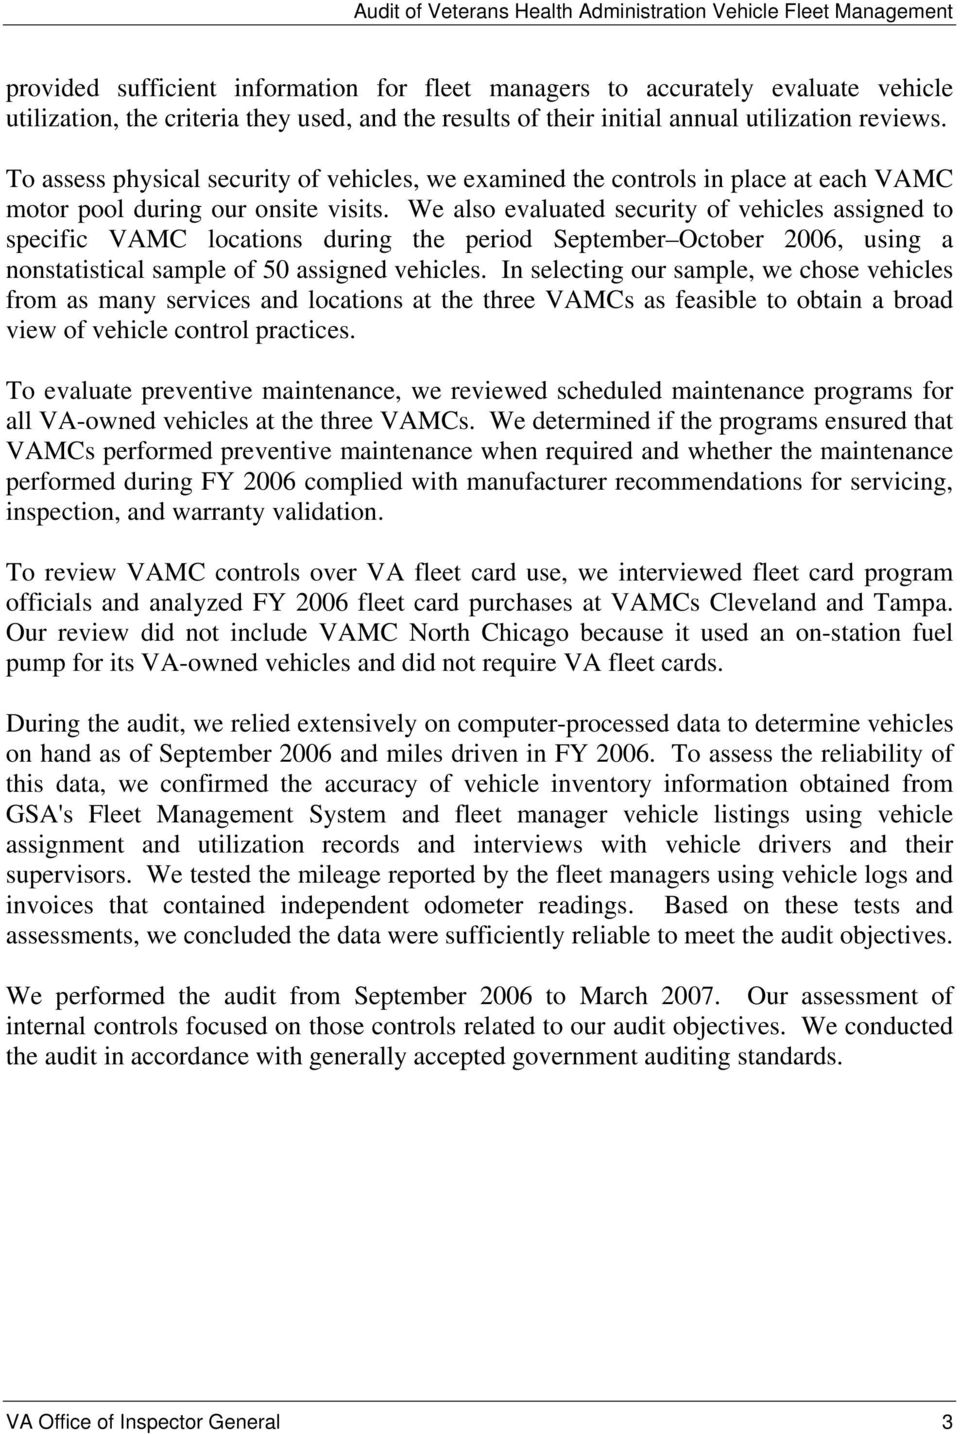 We also evaluated security of vehicles assigned to specific VAMC locations during the period September October 2006, using a nonstatistical sample of 50 assigned vehicles.